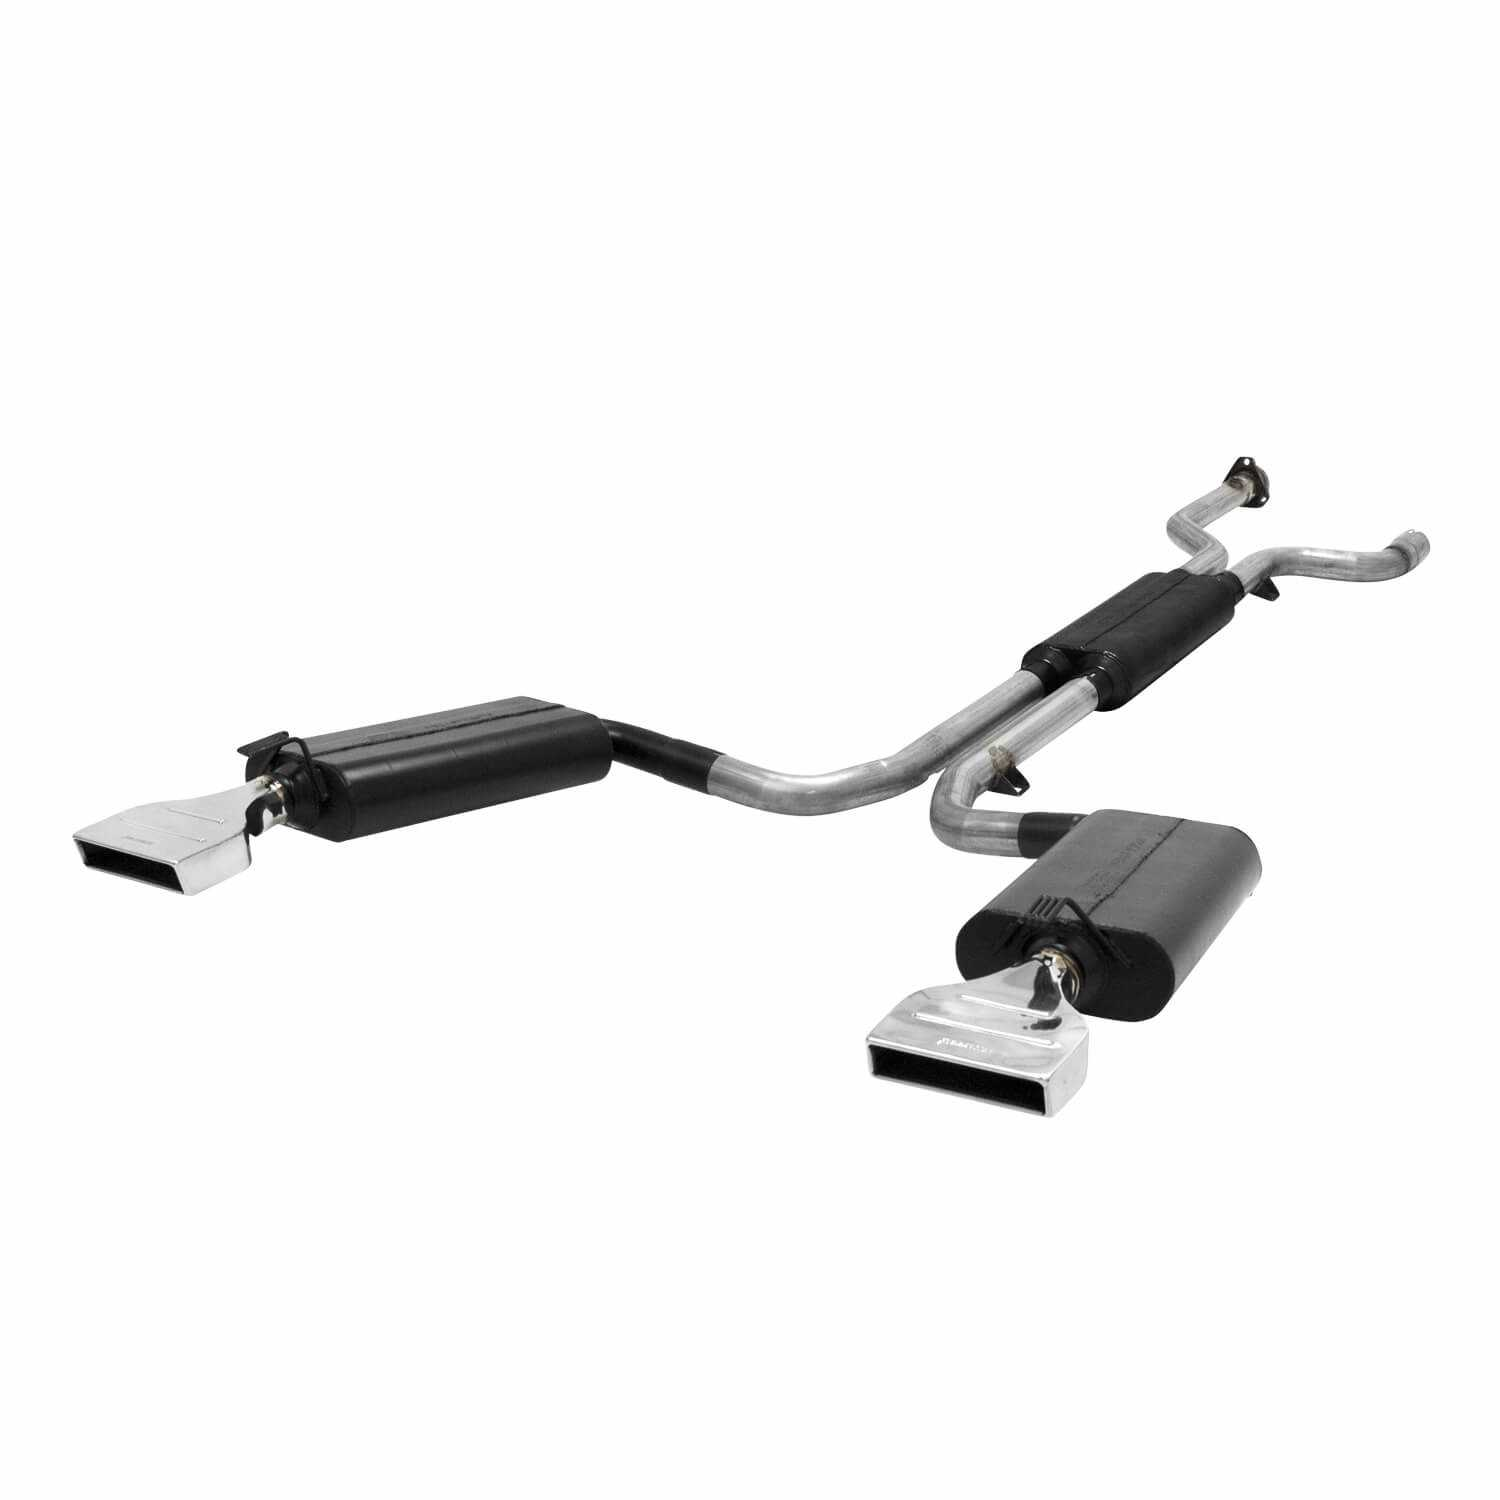 817670 Flowmaster Force II Cat Back System